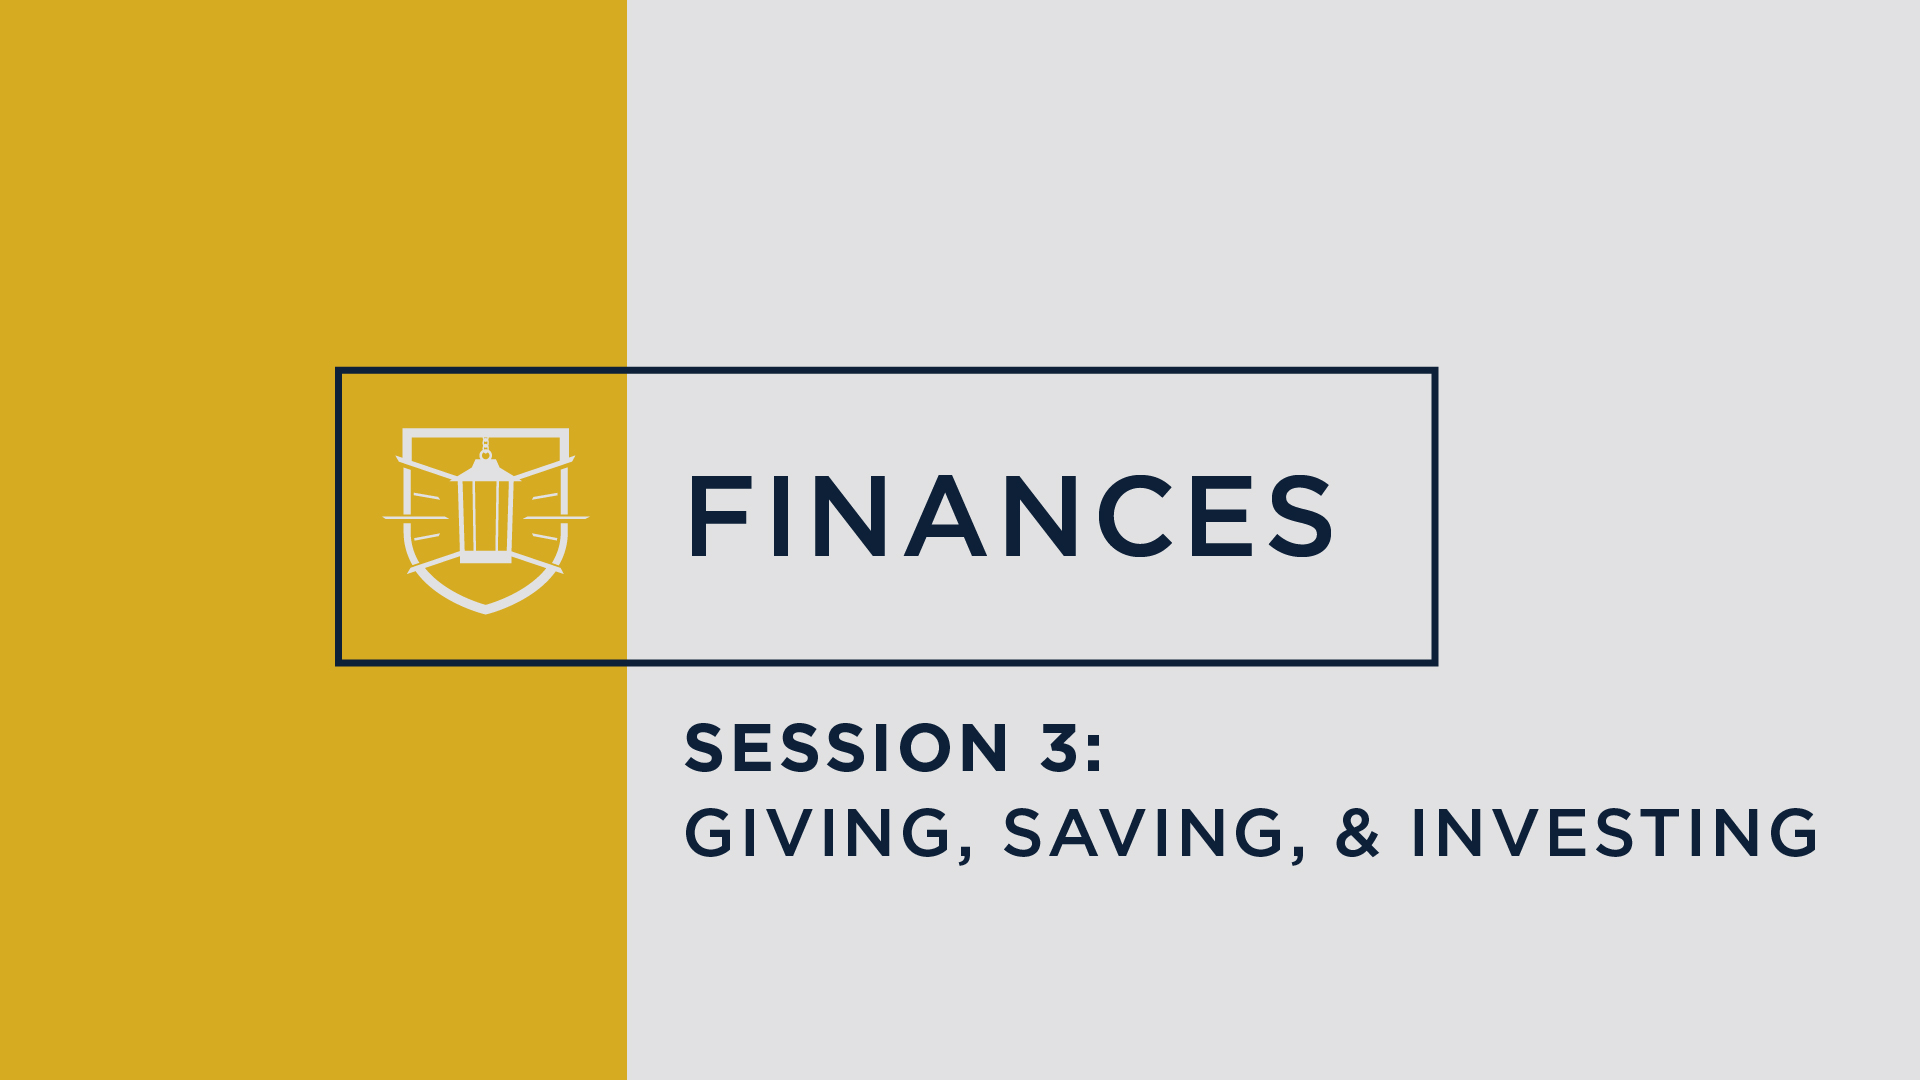 Finances 3: Giving, Saving, and Investing